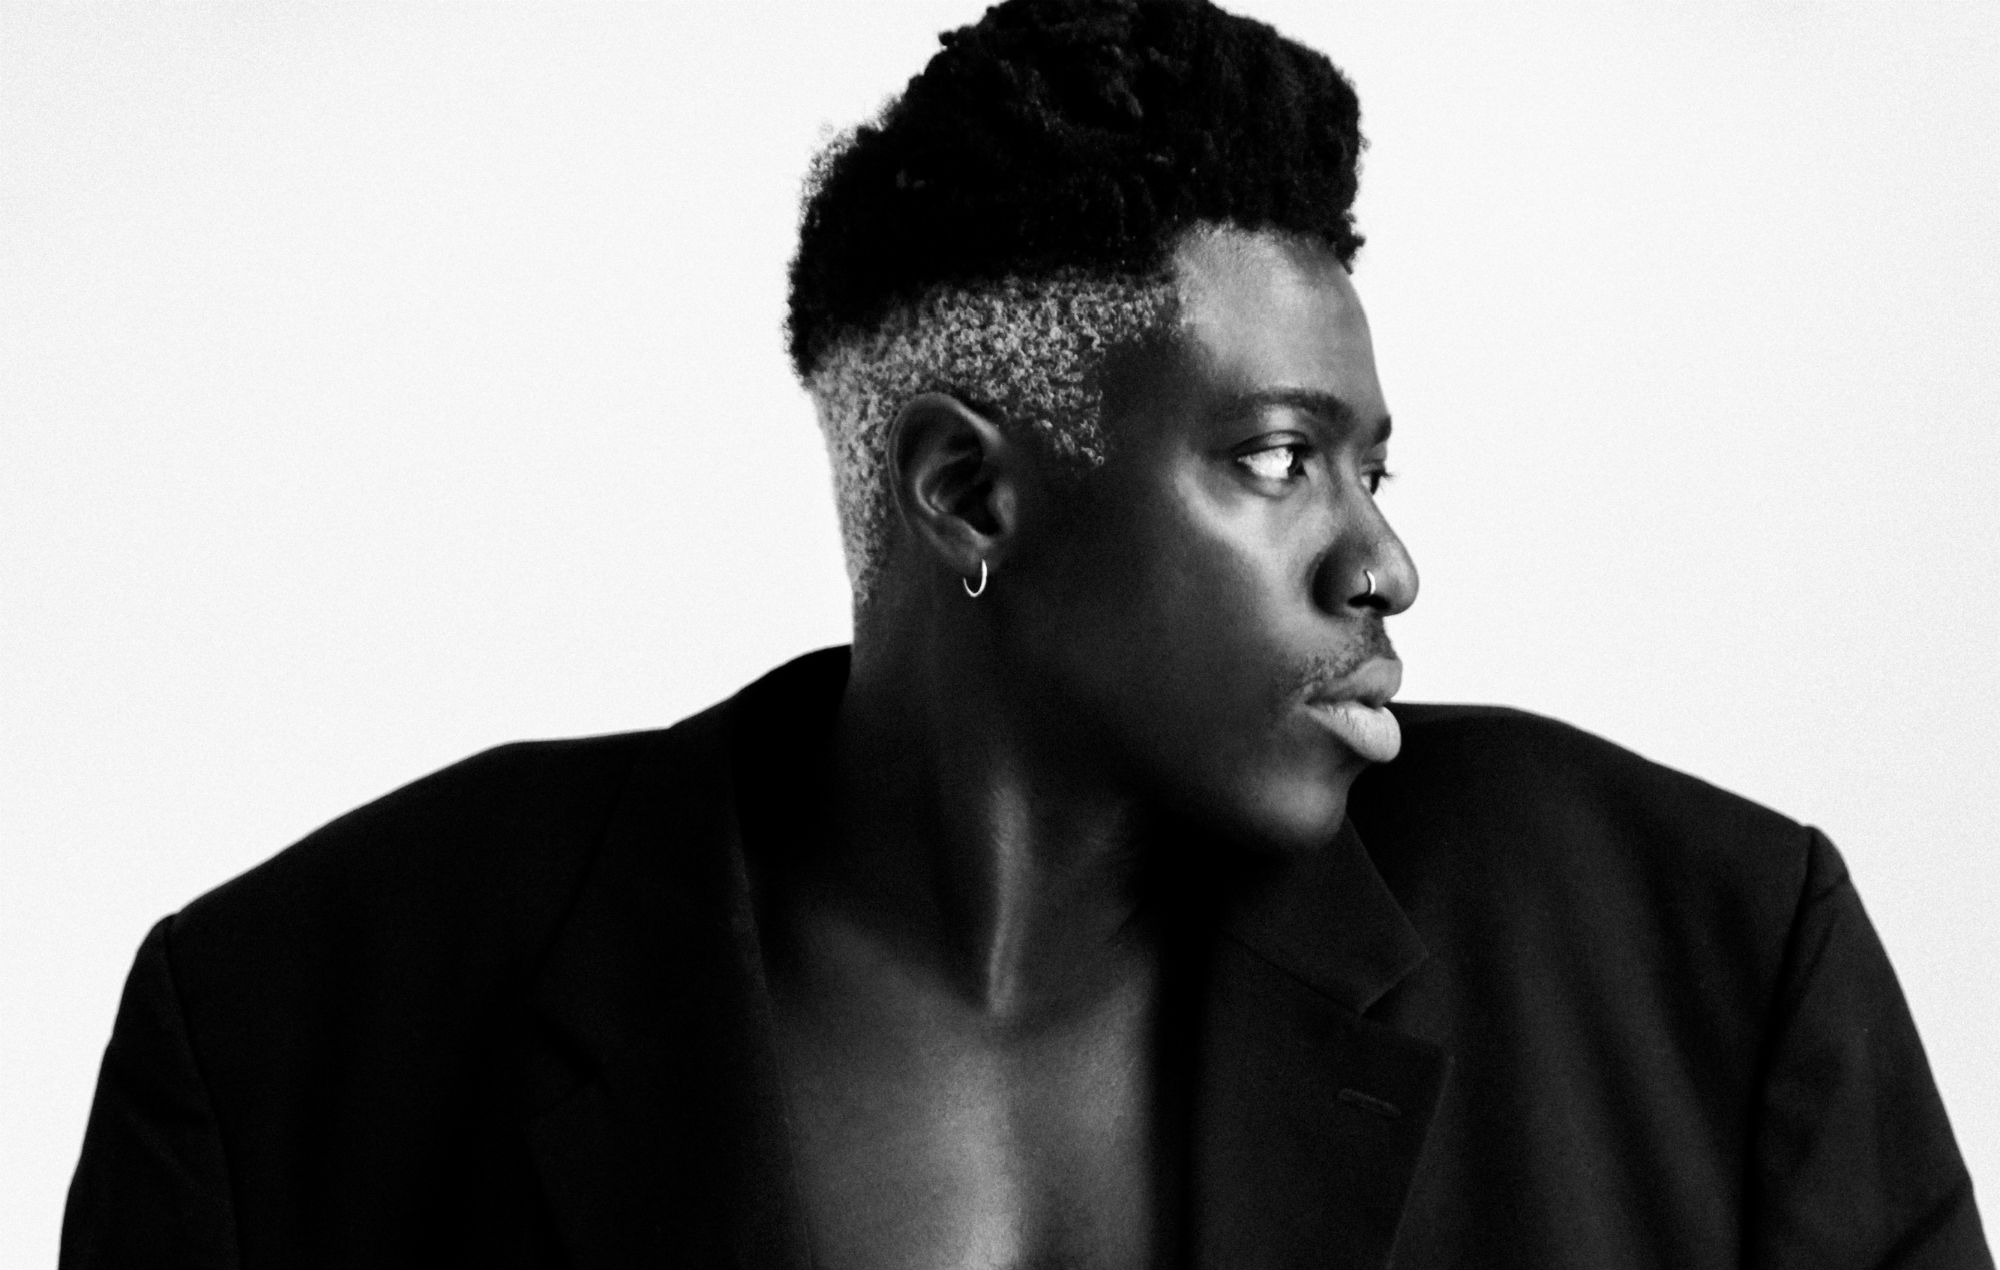 Moses Sumney's new album 'grae' is out now